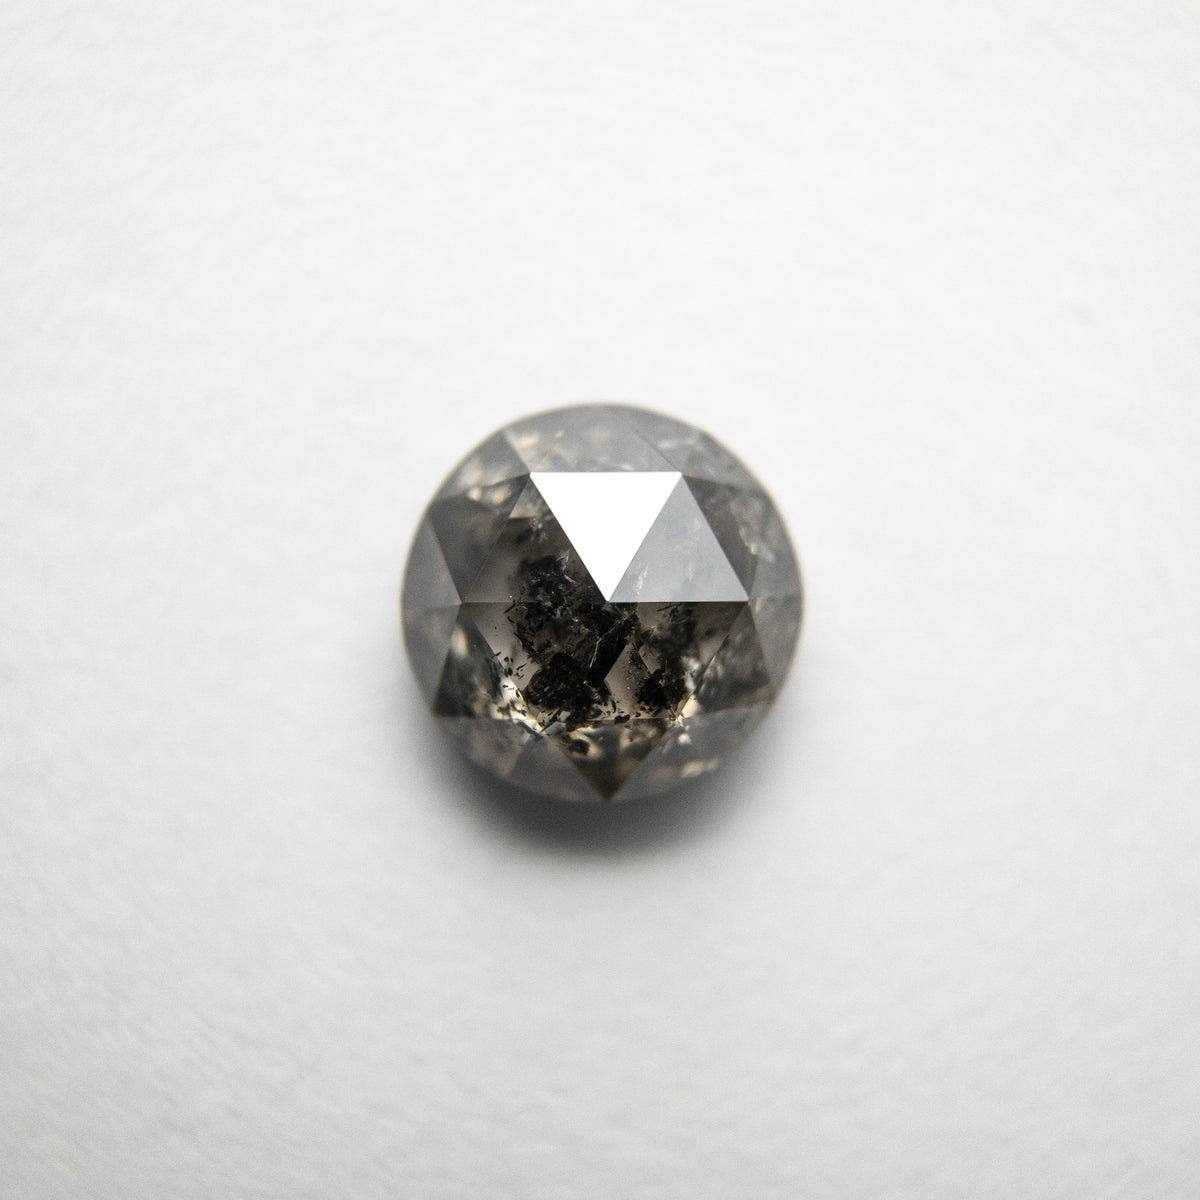 1.06ct 6.24x6.21x3.01mm Round Rosecut 18434-08